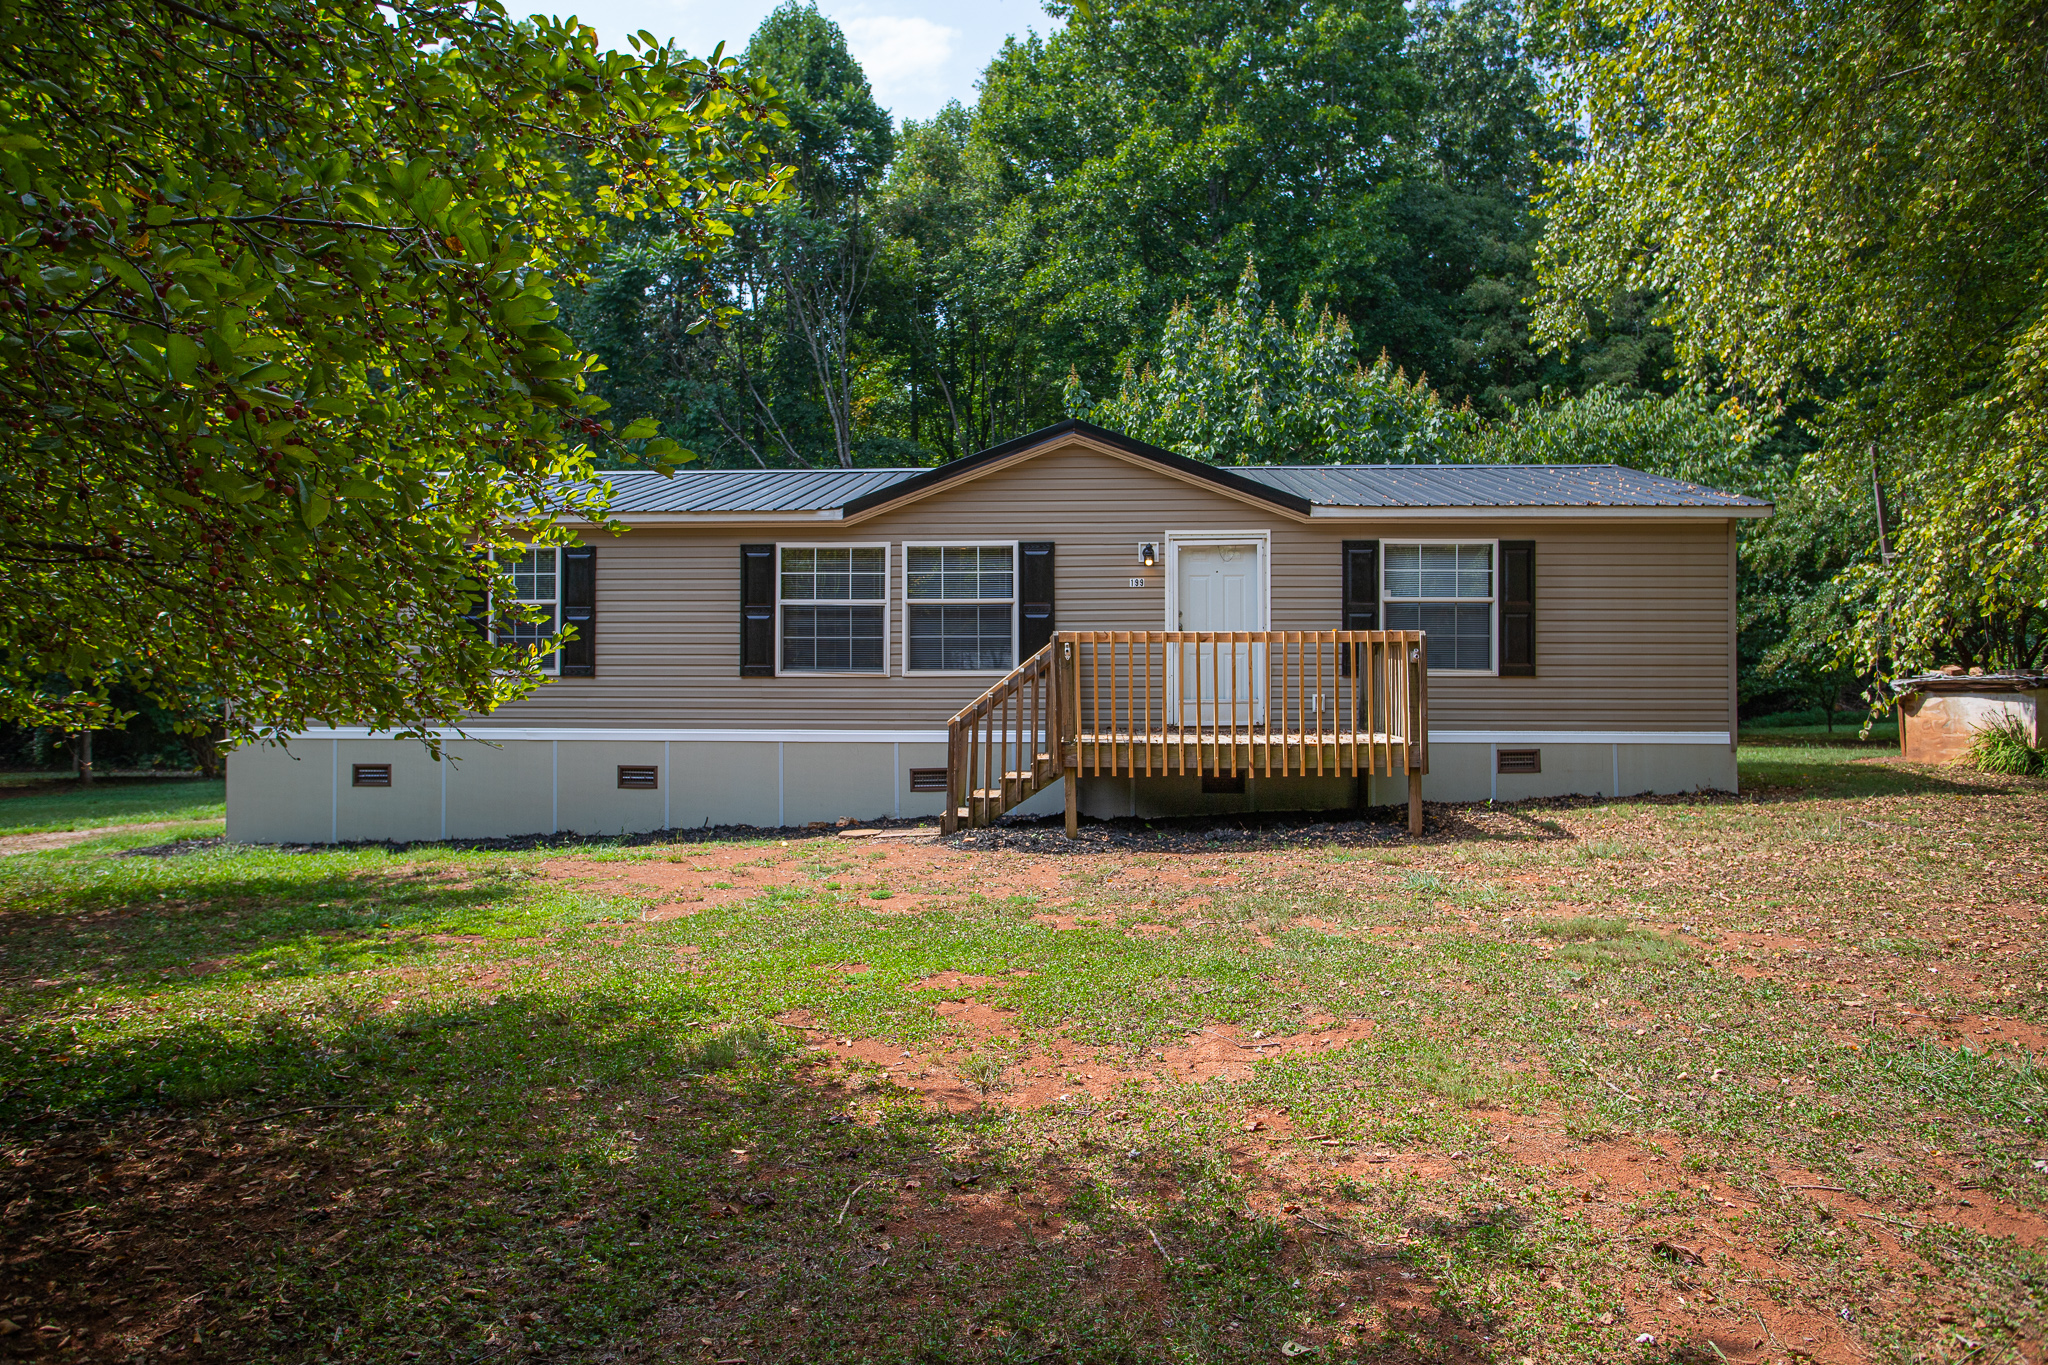 Move-In Ready Home with a Picture Perfect 5 Acre Lot in Franklin County!